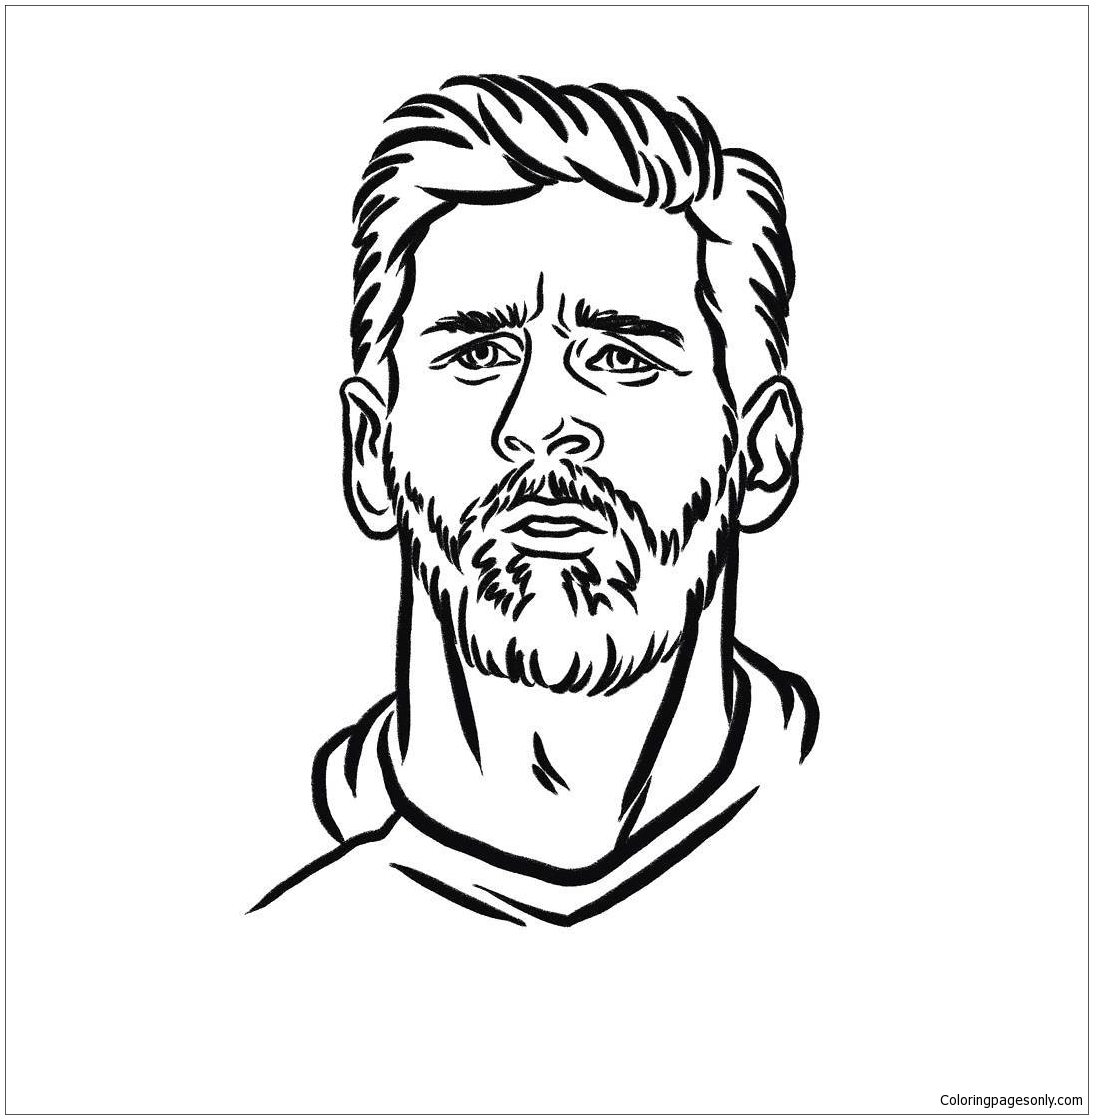 Lionel Messi-image 11 Coloring Page